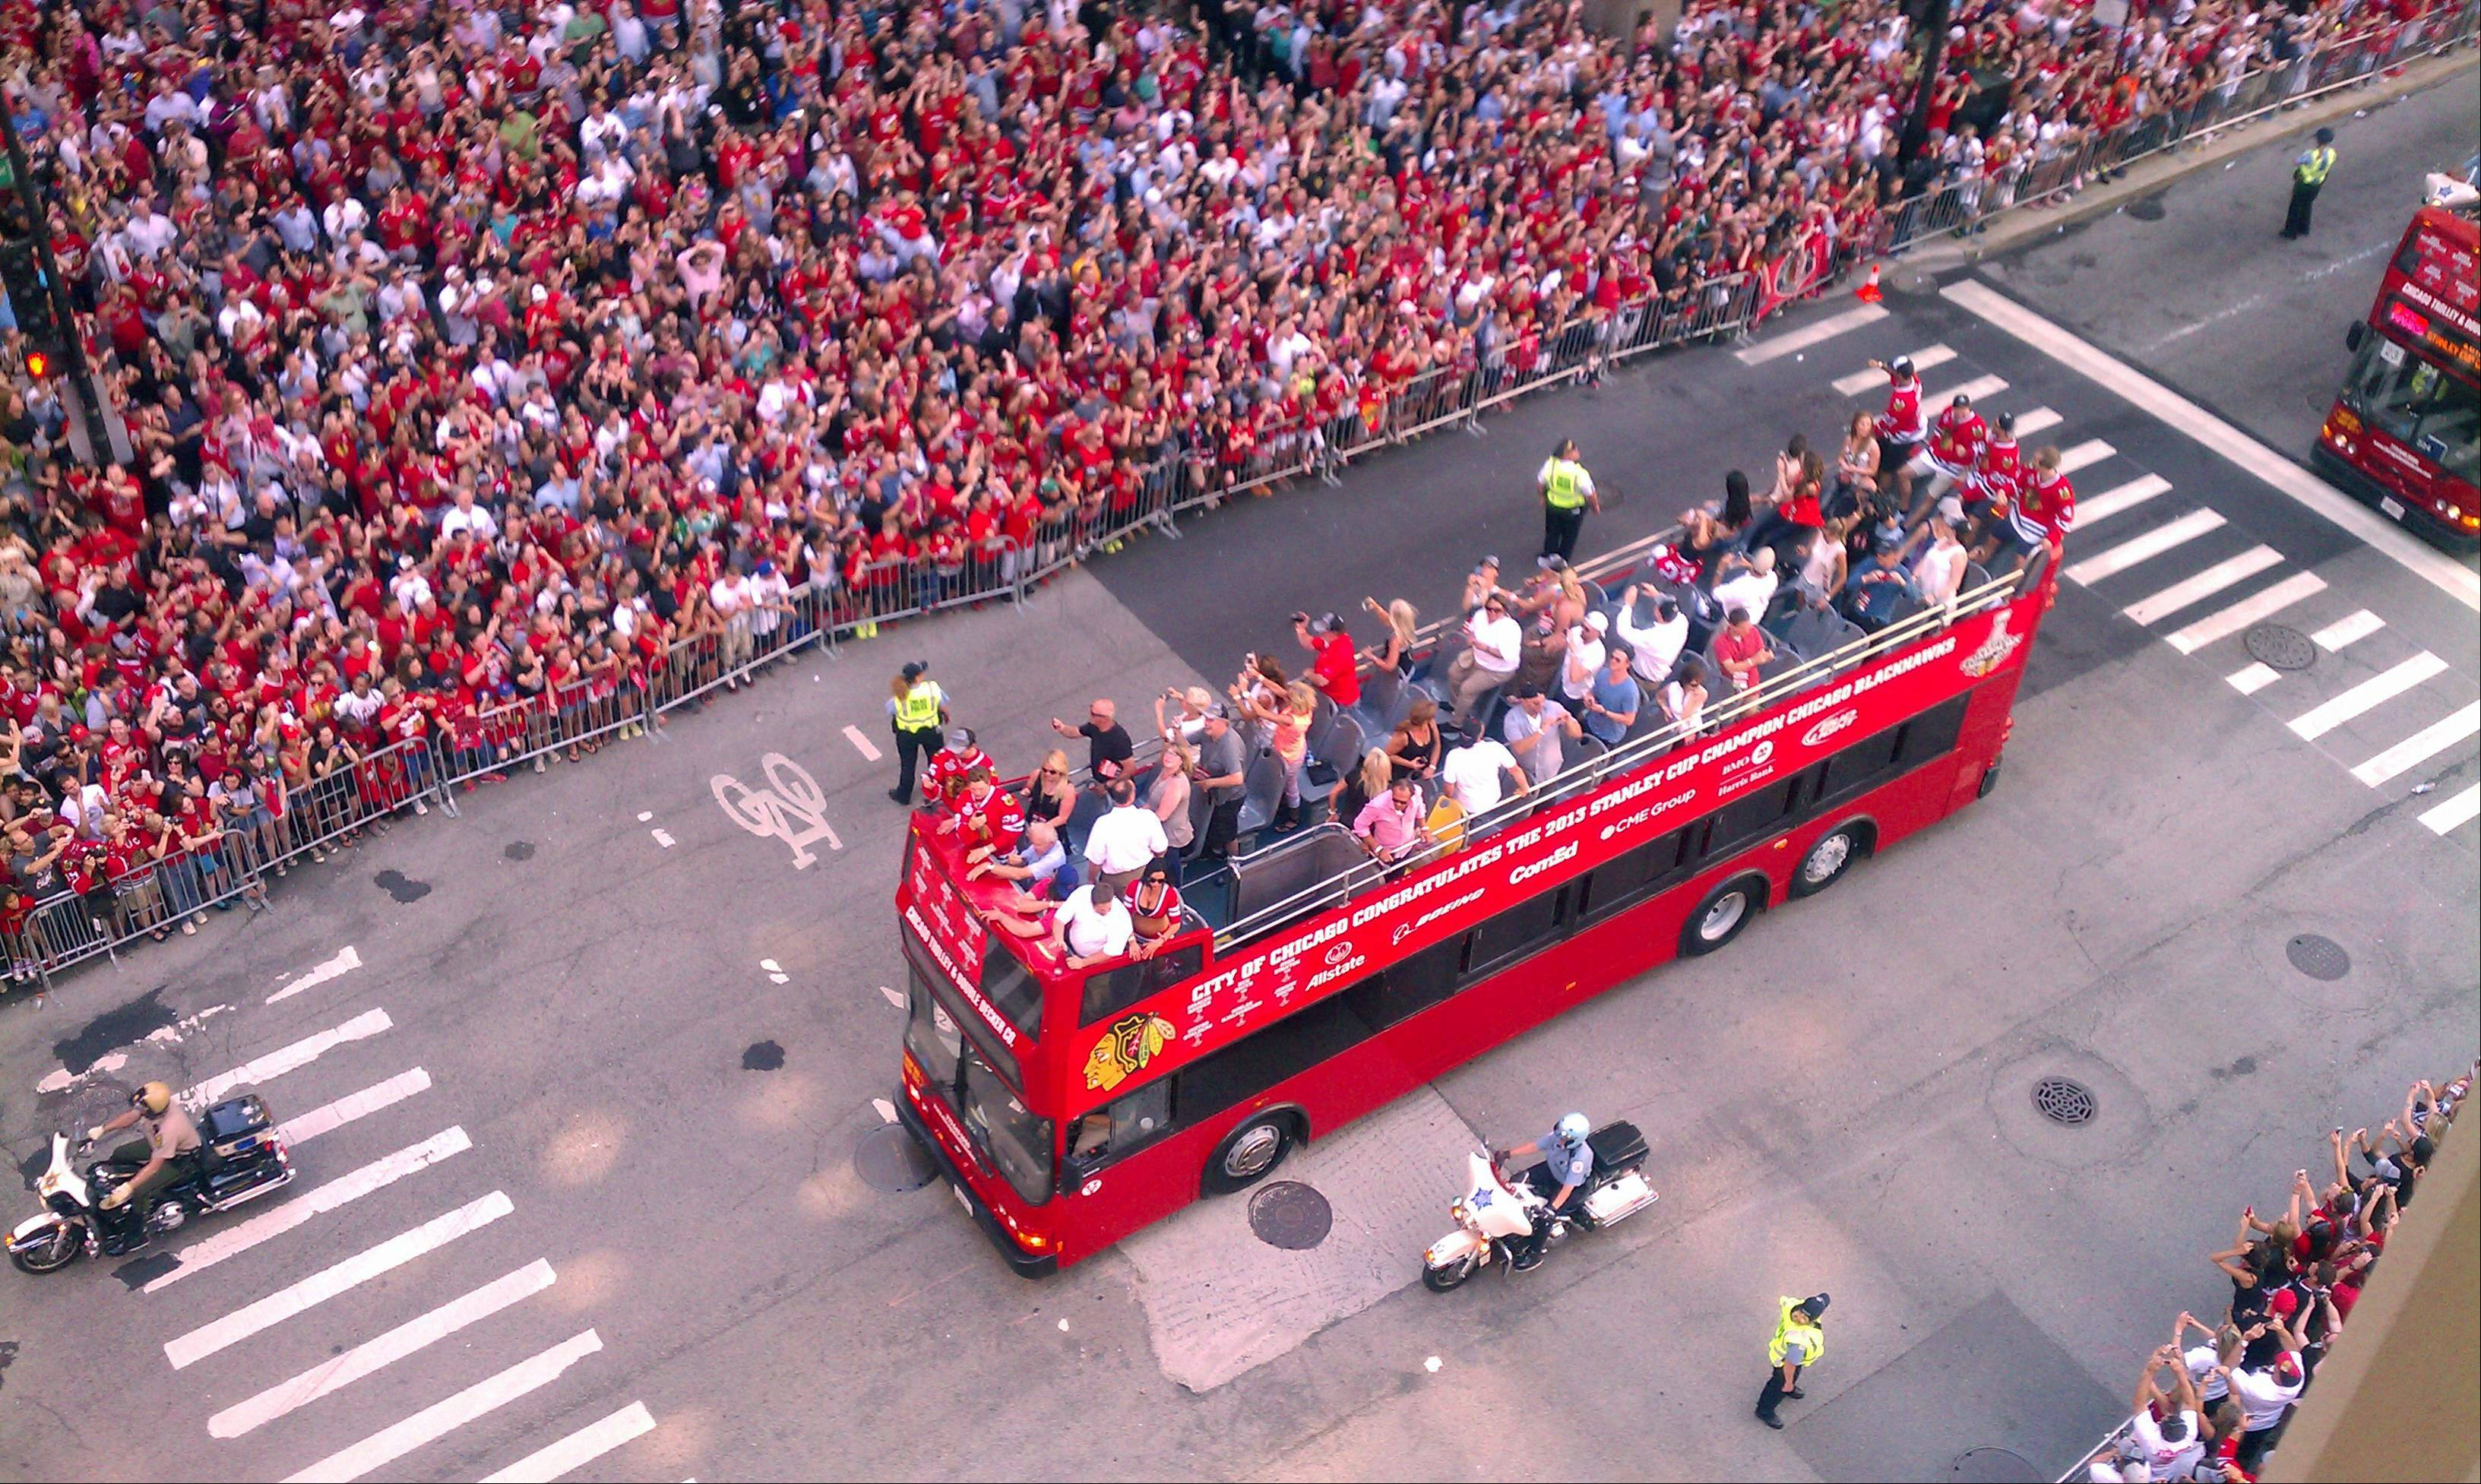 The buses full of Chicago Blackhawks players head down Washington Ave on their way to the rally in Grant Park.